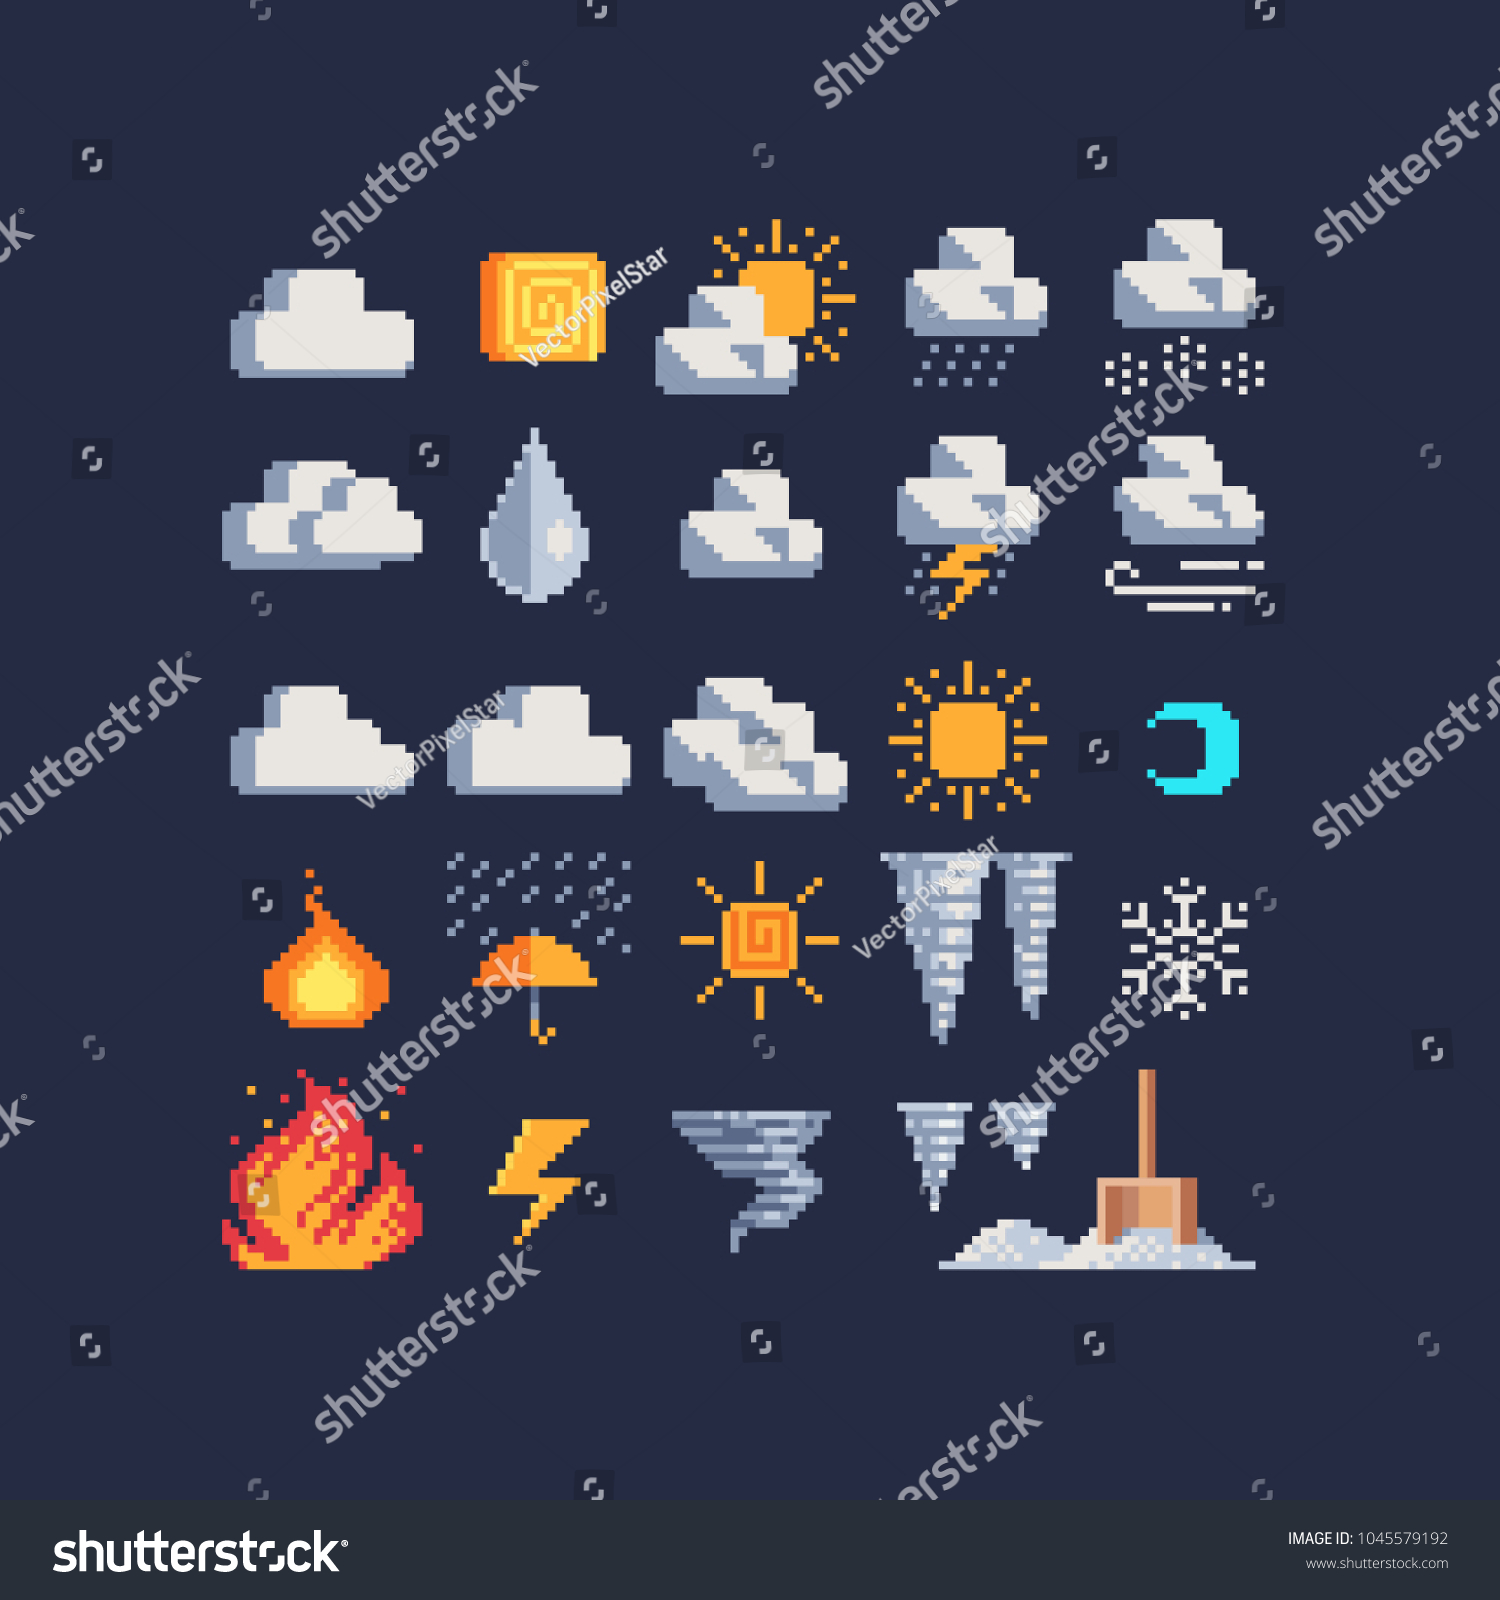 Weather Symbols Pixel Art 80 S Style Stock Vector Royalty Free